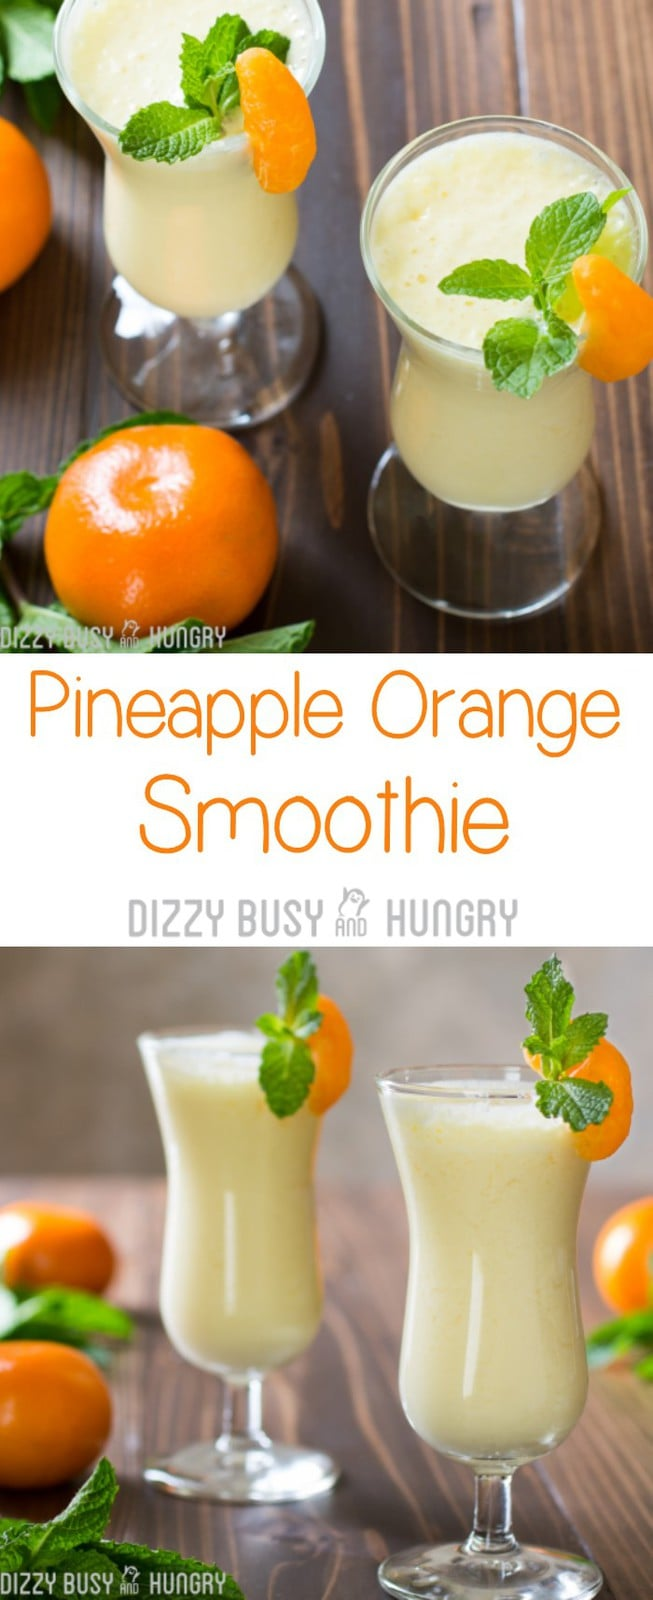 Pineapple Orange Smoothie | DizzyBusyandHungry.com - Brighten your day with this delicious and healthy smoothie recipe, great for breakfast or anytime! #vitaminc #smoothie #healthy #healthyrecipes #orange #pineapple